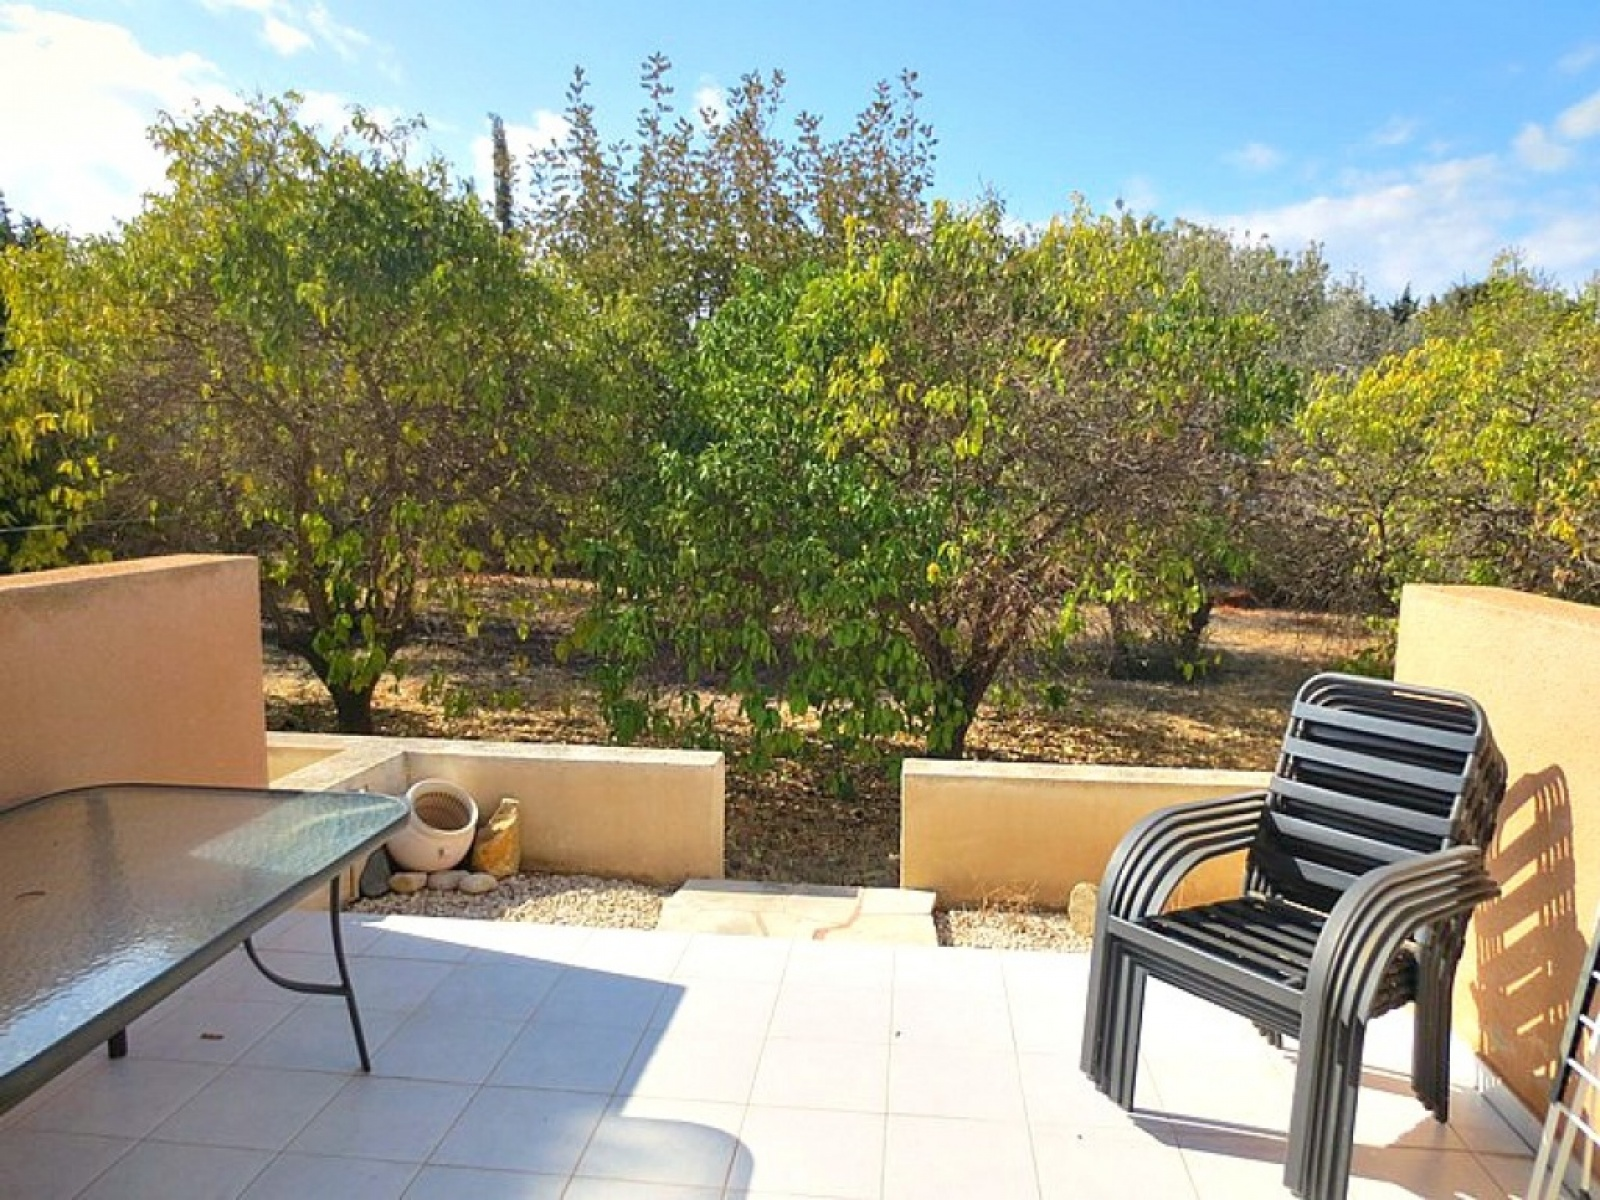 Residential Town House - Kato Paphos Townhouse - Resale